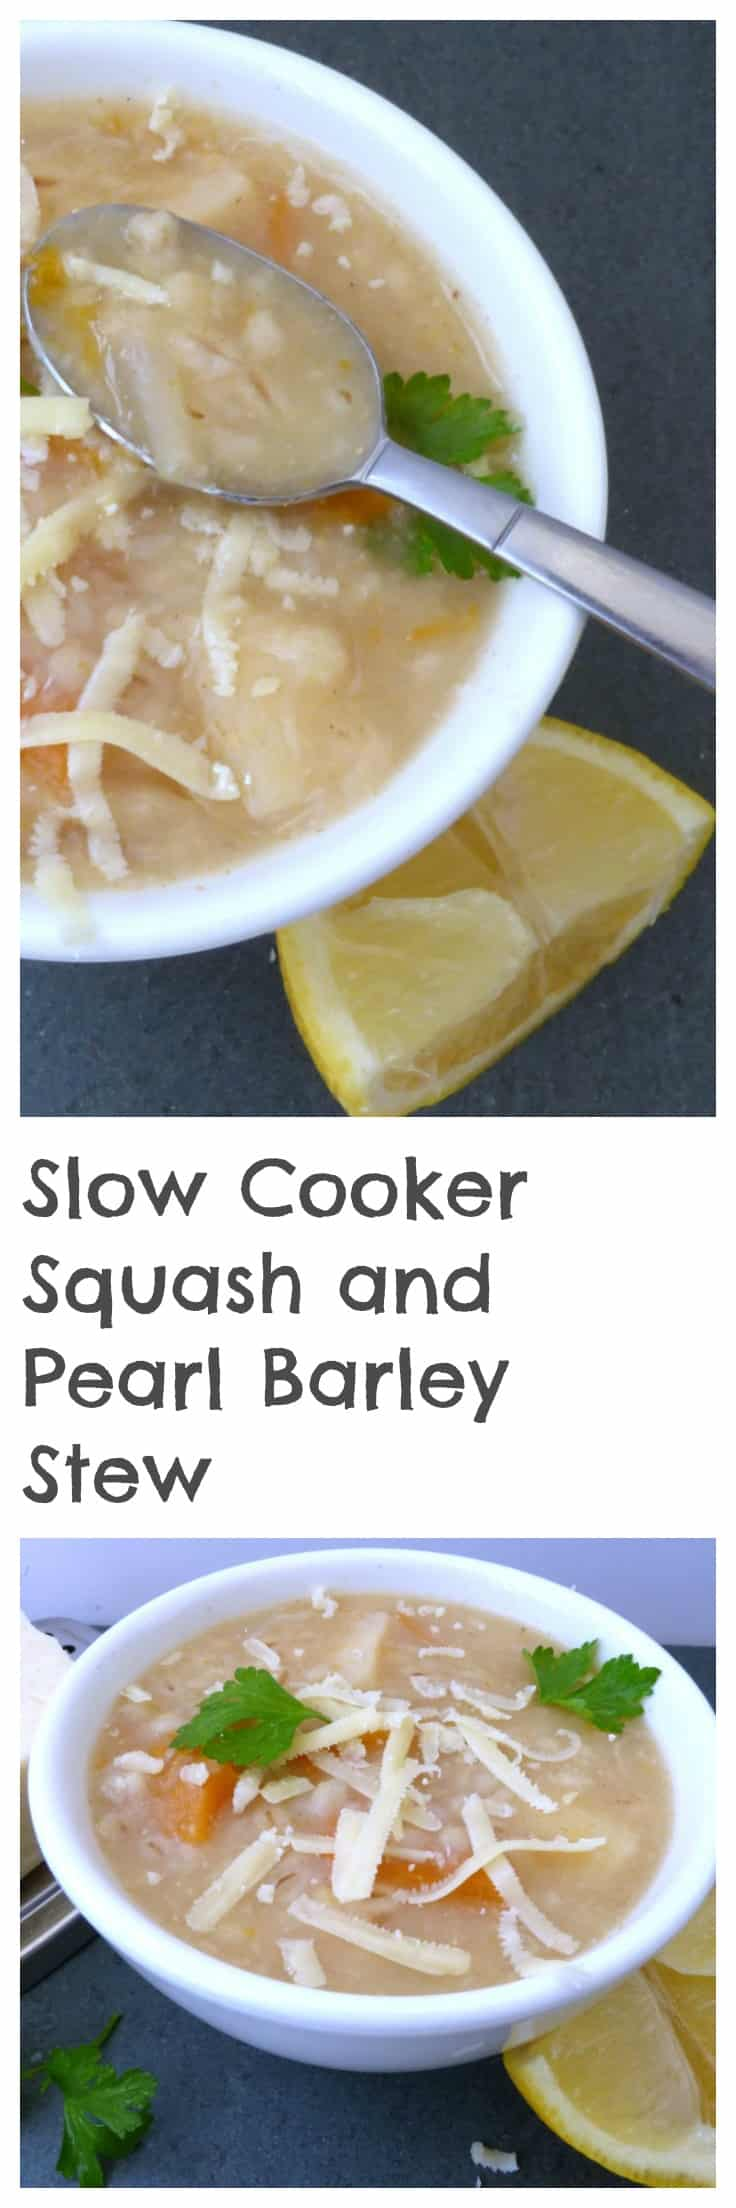 Slow cooker butternut squash and pearl barley stew